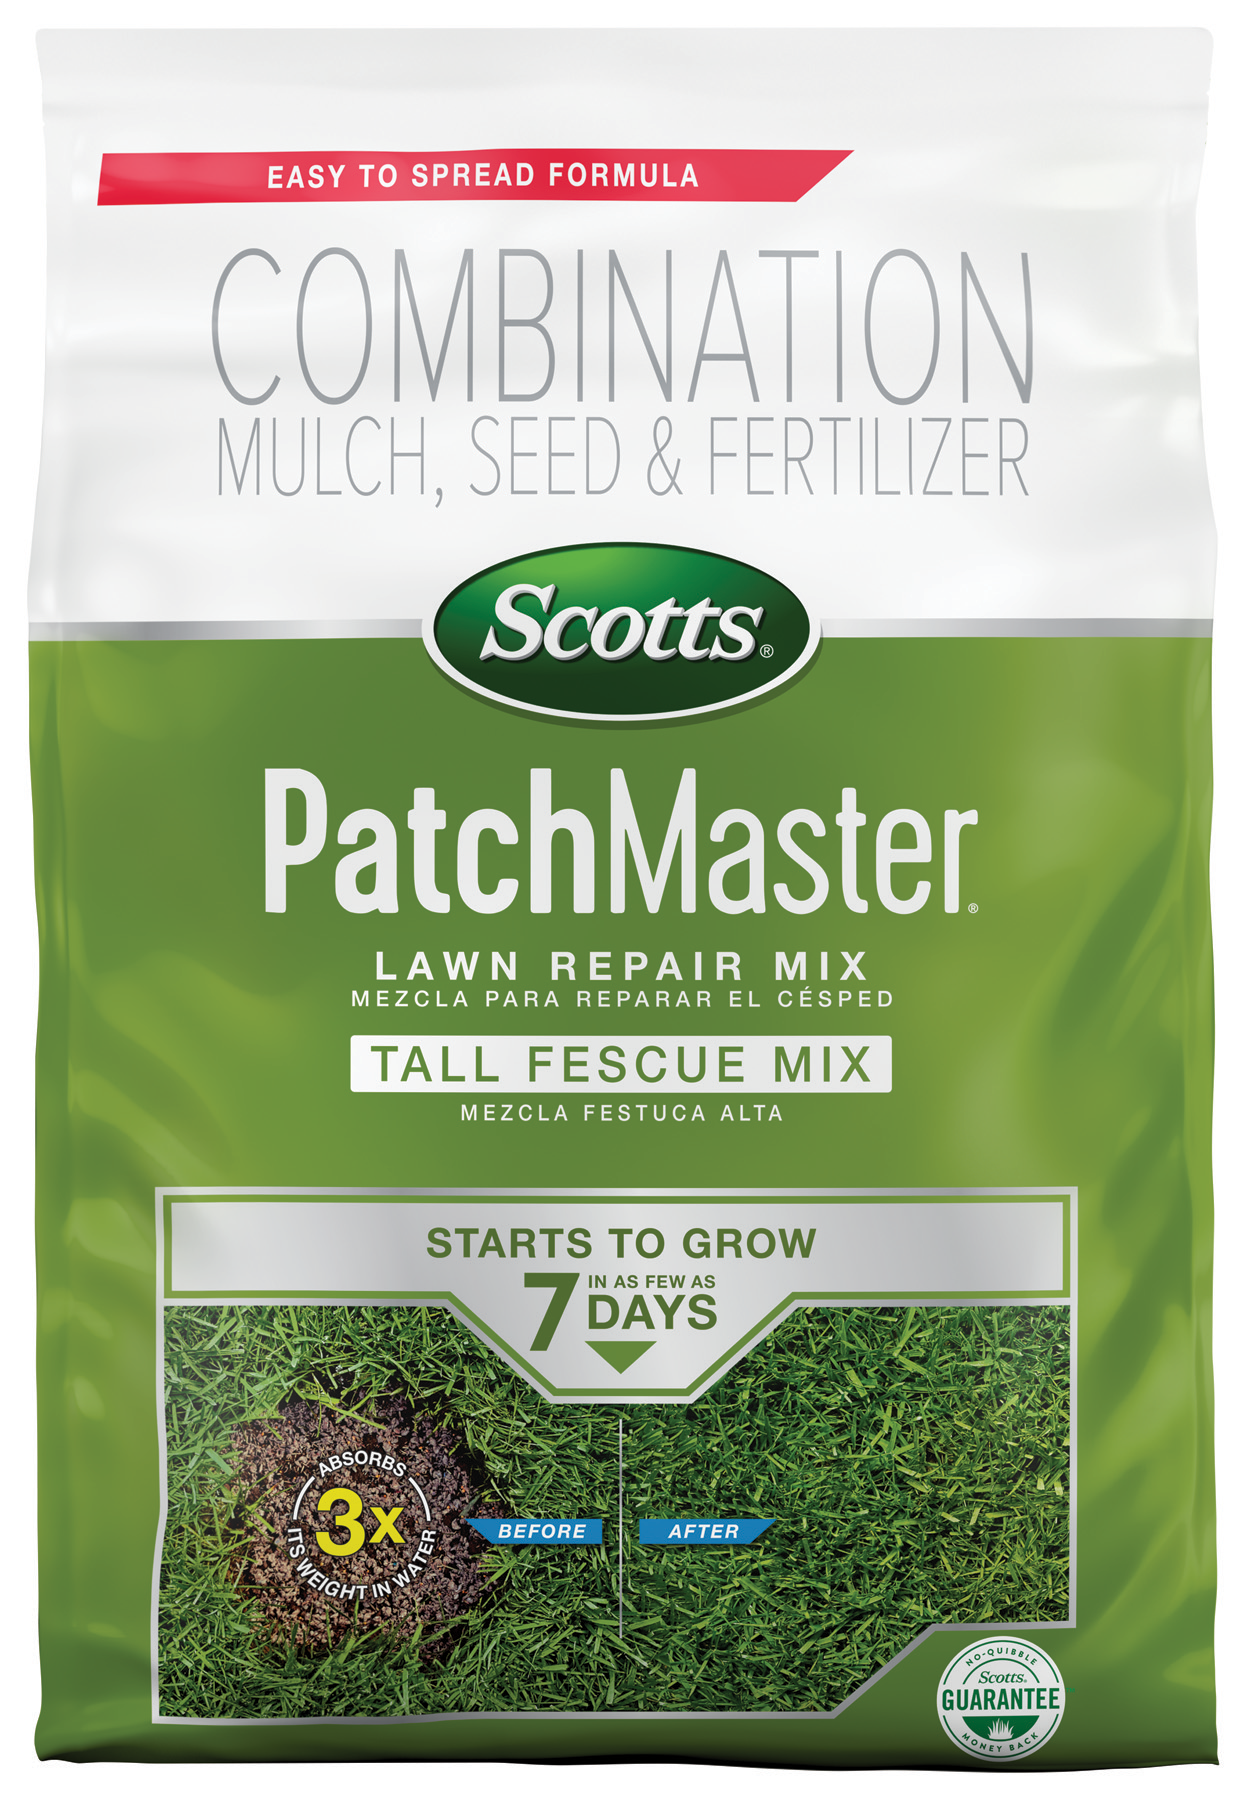 Scotts Patchmaster Lawn Repair Mix Tall Fescue Mix Scotts